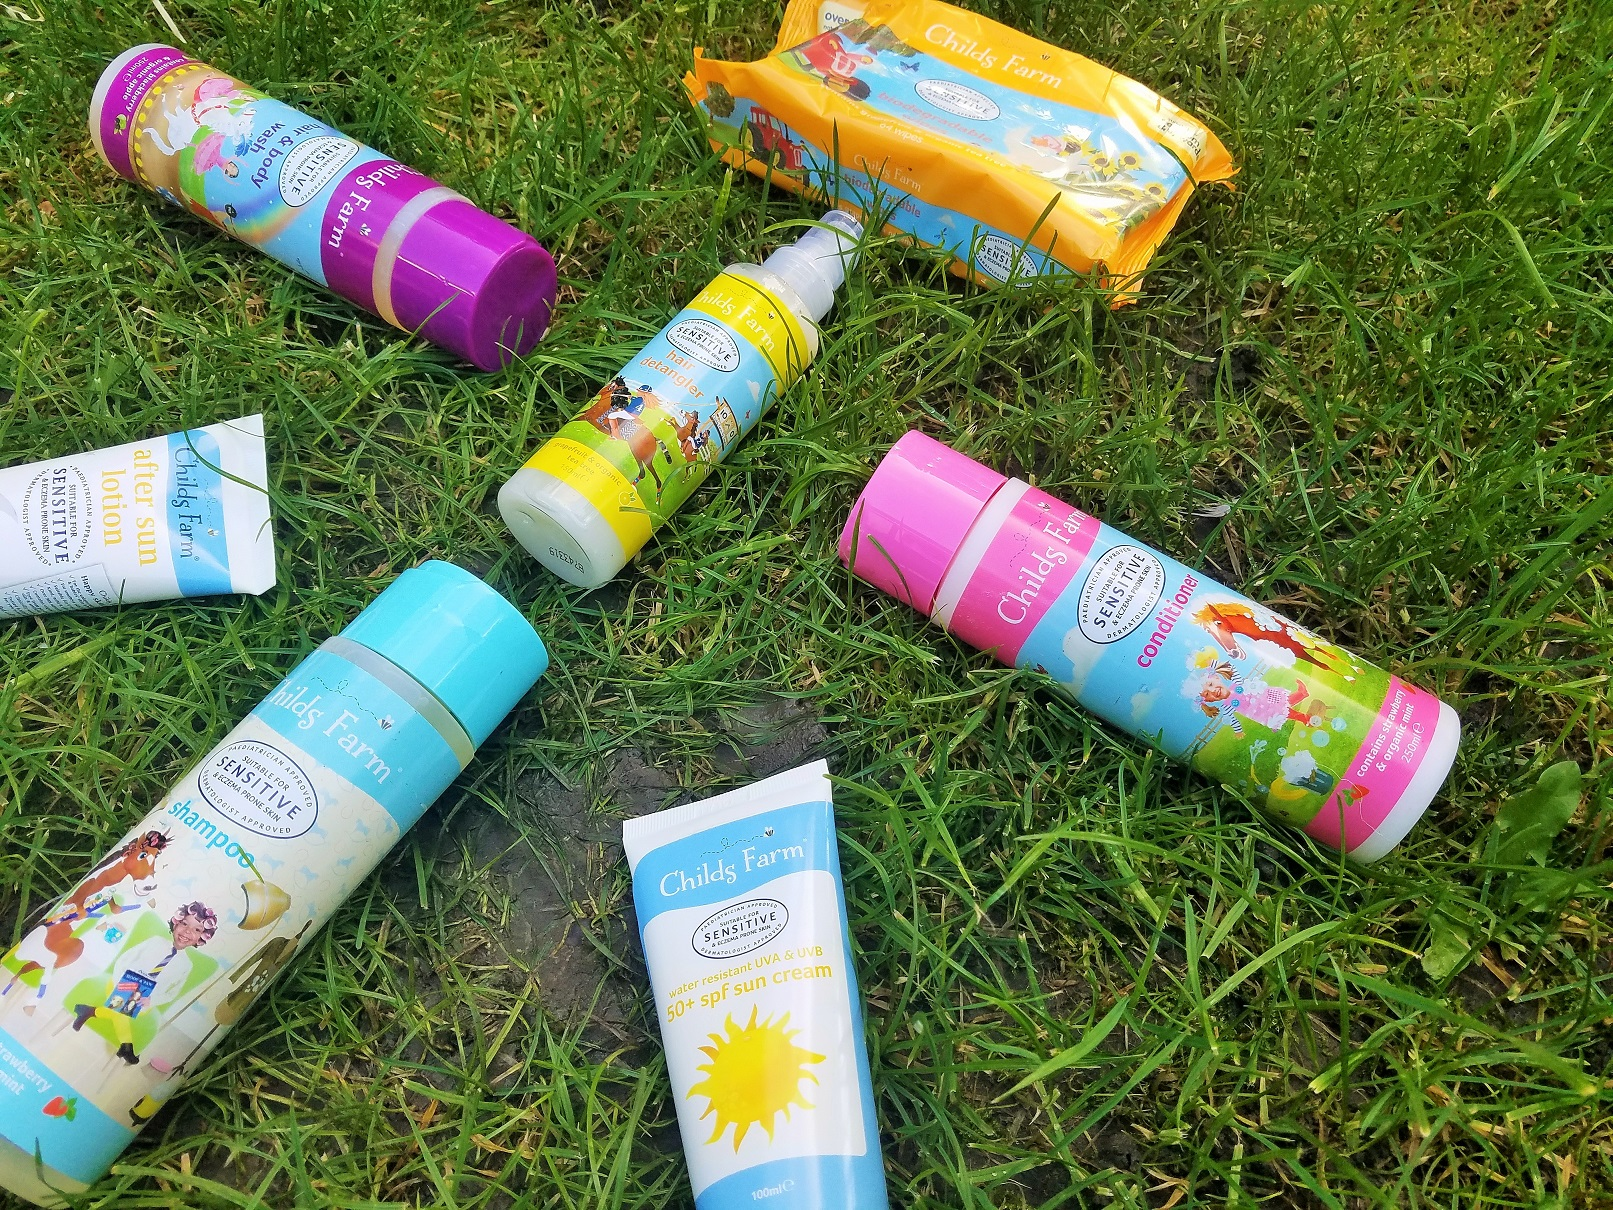 Childs Farm Skin care and hair care